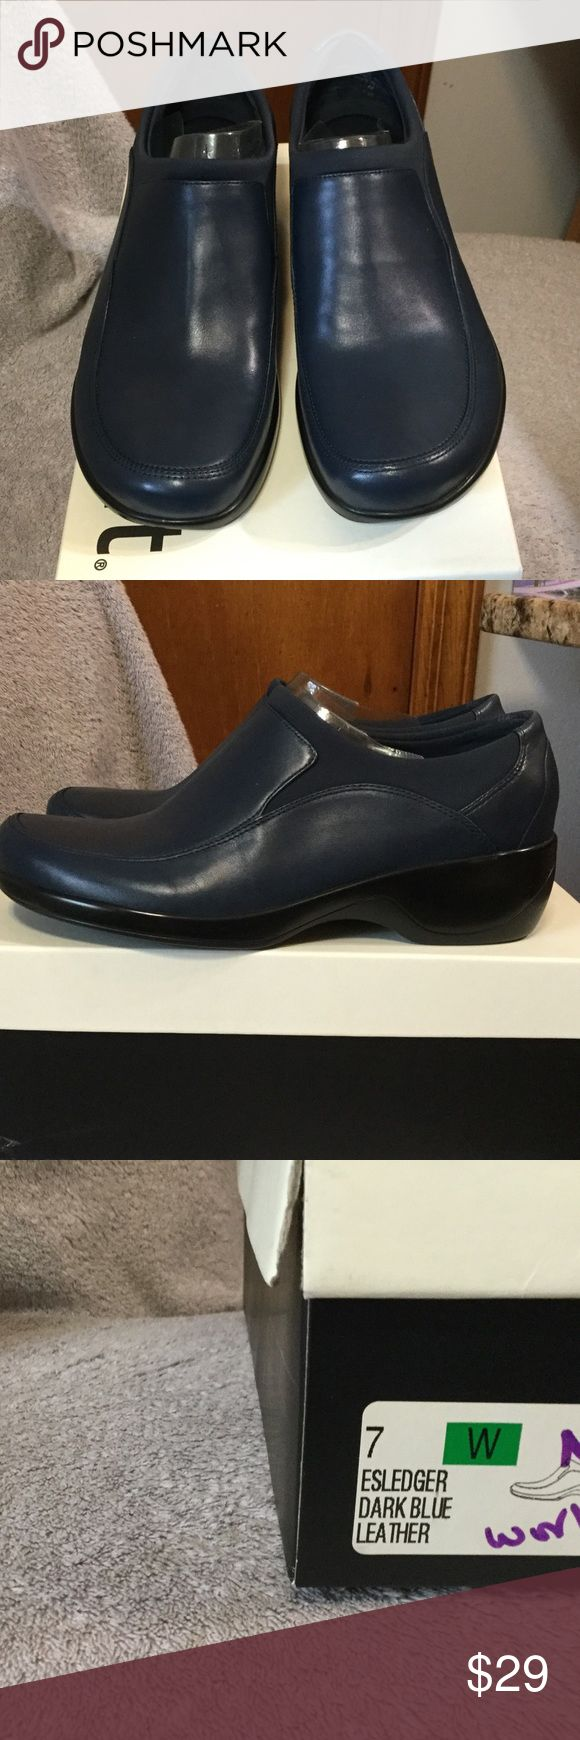 EASY SPIRIT NAVY LEATHER SHOES Brand new, navy leather and some fabric. NON SMOKING, NO PET HOUSEHOLD. Easy Spirit Shoes Flats & Loafers